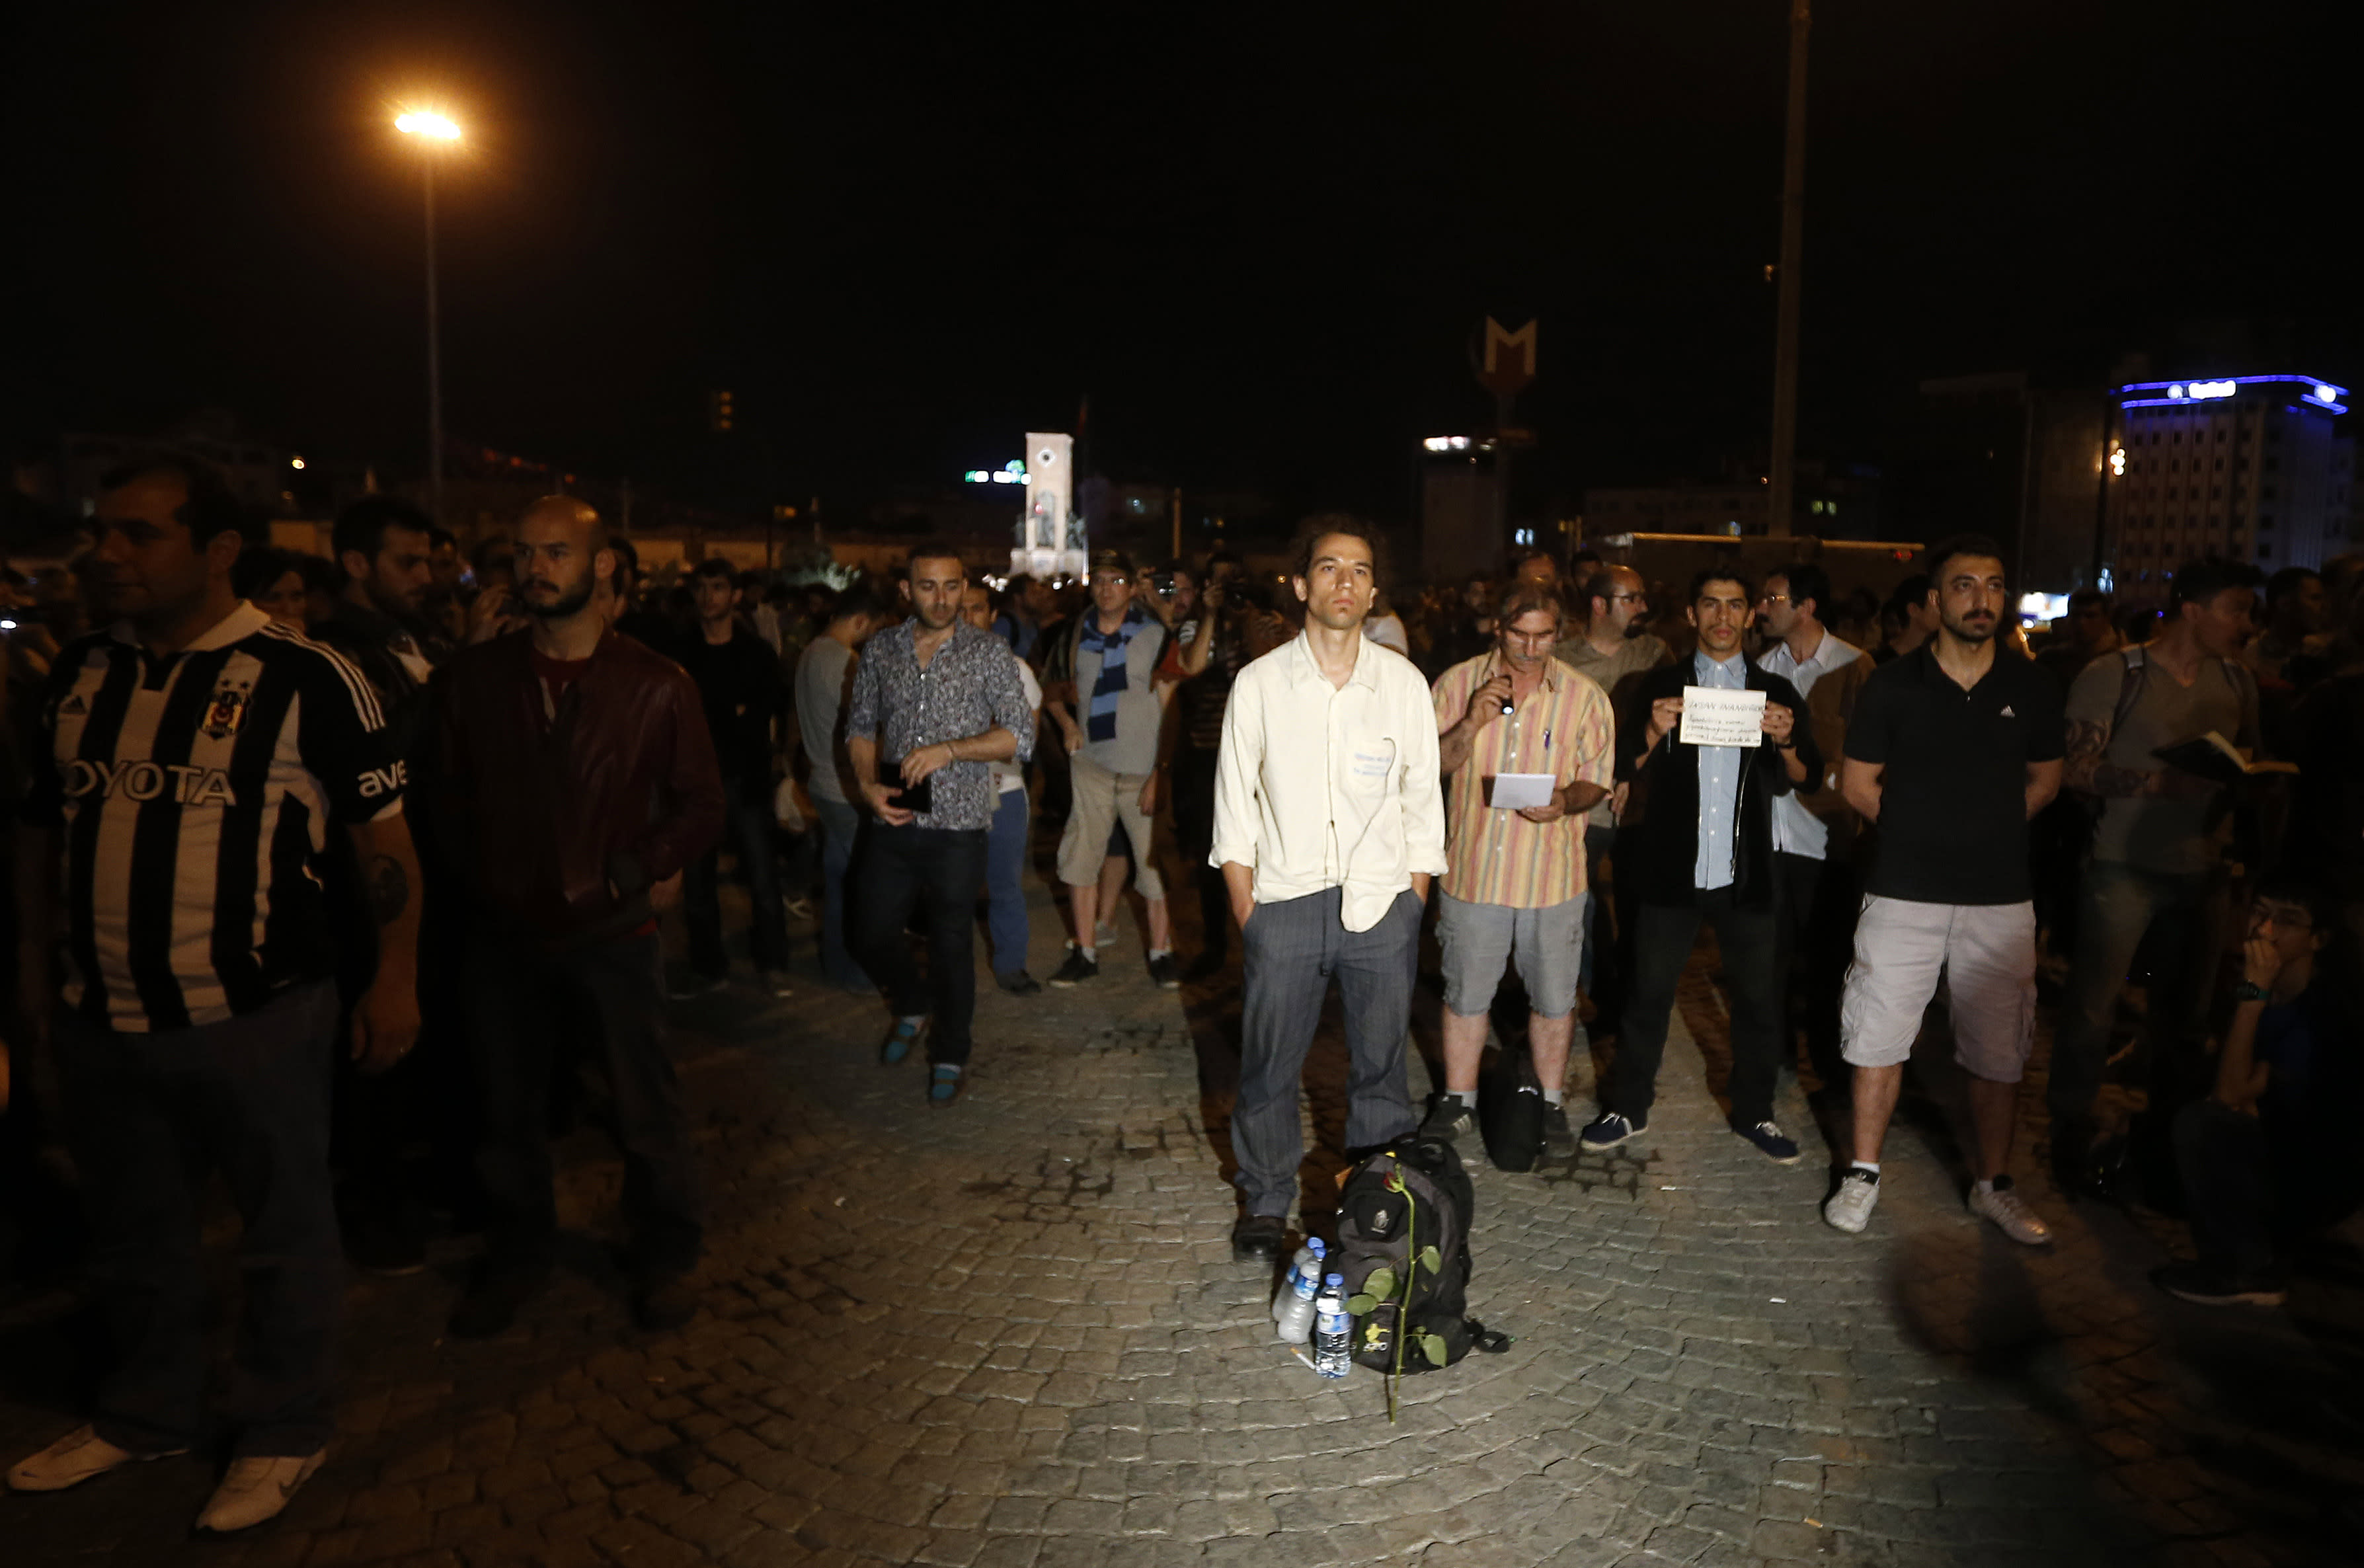 Erdem Gunduz, centre, stands silently on Taksim Square in Istanbul, Turkey, early Tuesday, June 18, 2013. After weeks of confrontation with police, sometimes violent, Turkish protesters are using a new form of resistance: standing silently. The development started late Monday when a solitary man began standing in passive defiance against Prime Minister Recep Tayyip Erdogan's authority at Istanbul's central Taksim Square. The square has been sealed off from mass protests since police cleared it over the weekend. The man has identified himself as Erdem Gunduz, a performance artist. His act has sparked imitation by others in Istanbul and other cities. It has provoked widespread comment on social media. (AP Photo/Petr David Josek)